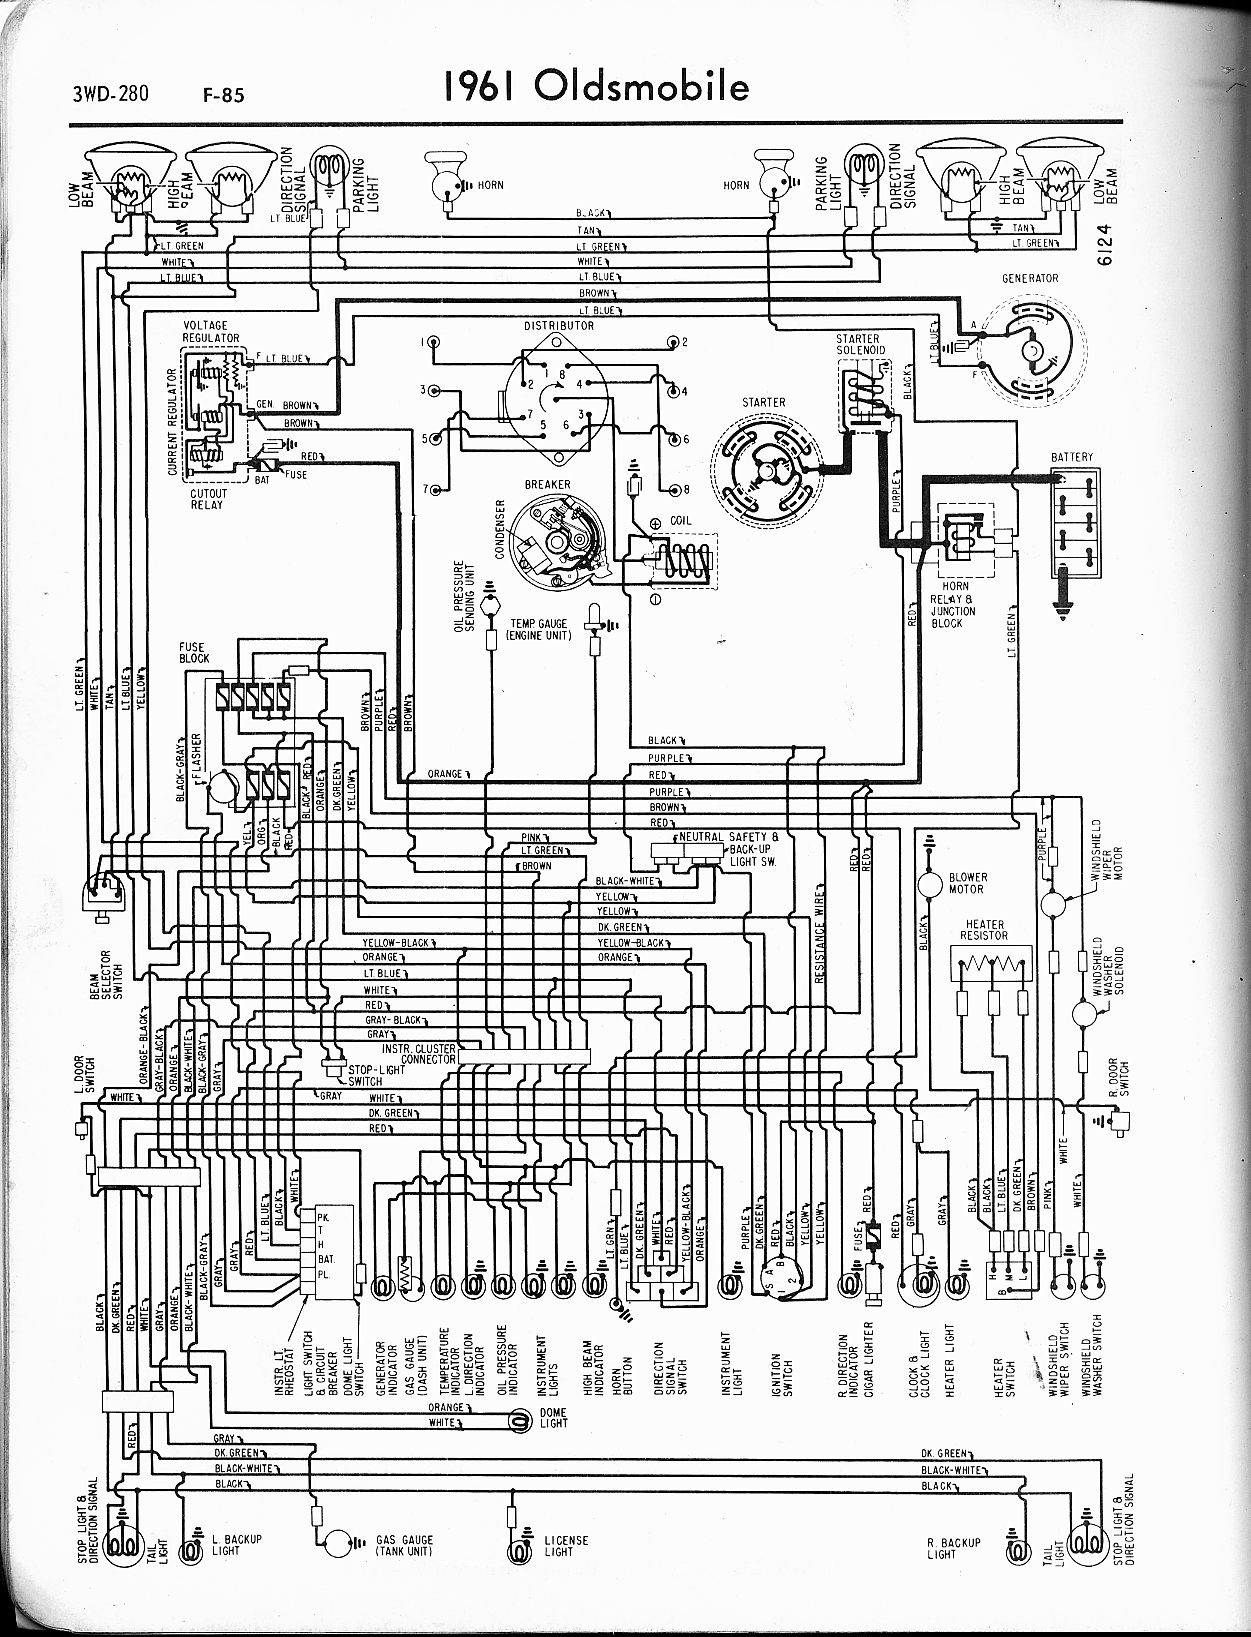 MWire5765 280 oldsmobile wiring diagram oldsmobile wiring diagrams instruction Basic Turn Signal Wiring Diagram at edmiracle.co